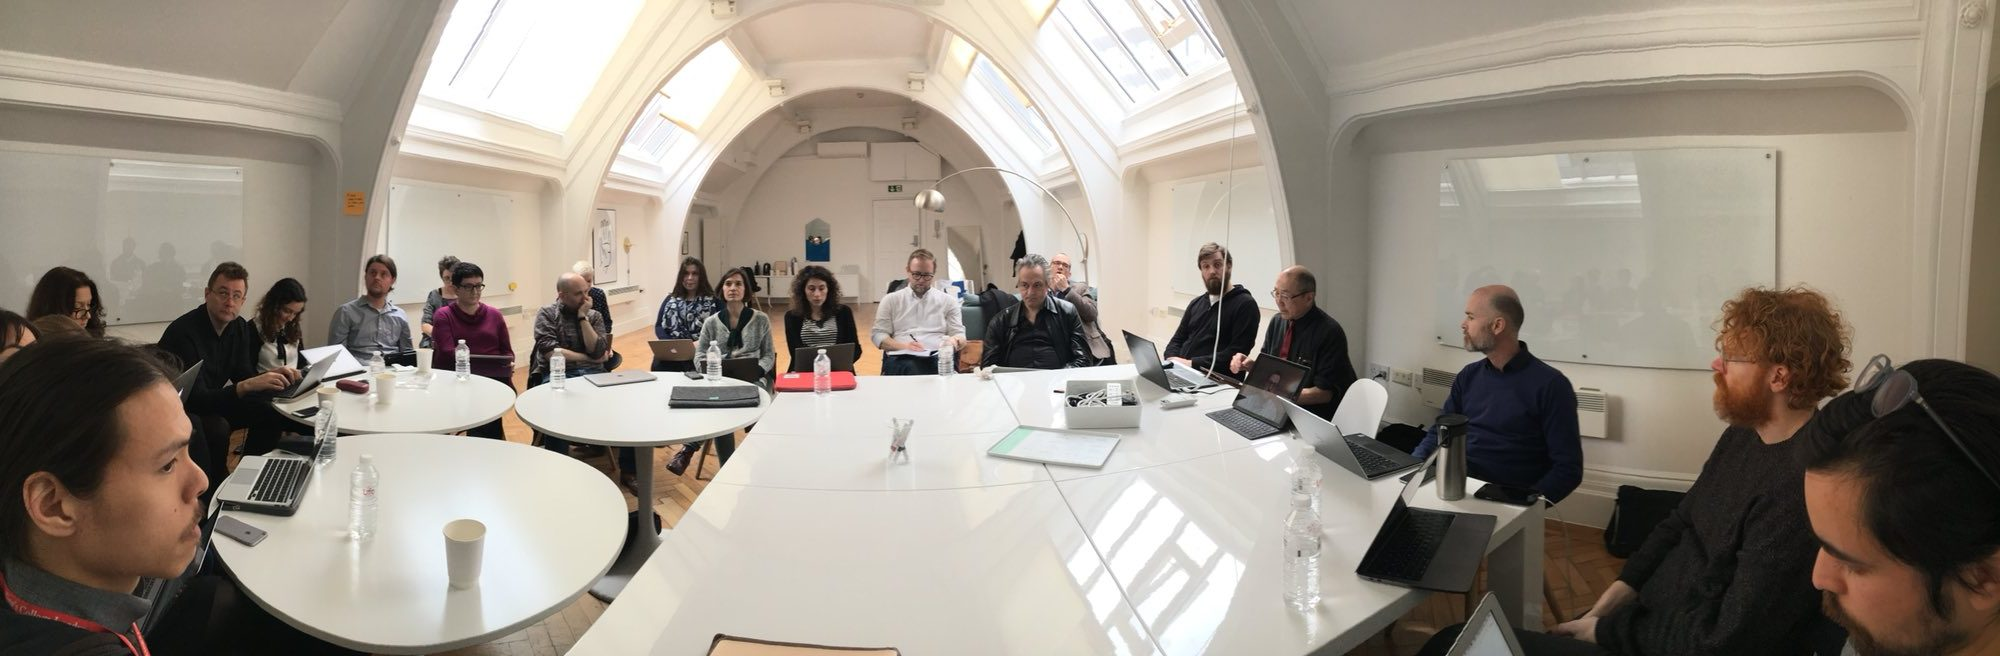 Critical Infrastructure Studies workshop, hosted by King's Digital Humanities Lab, March 29, 2018. Photo by Jonathan Gray.